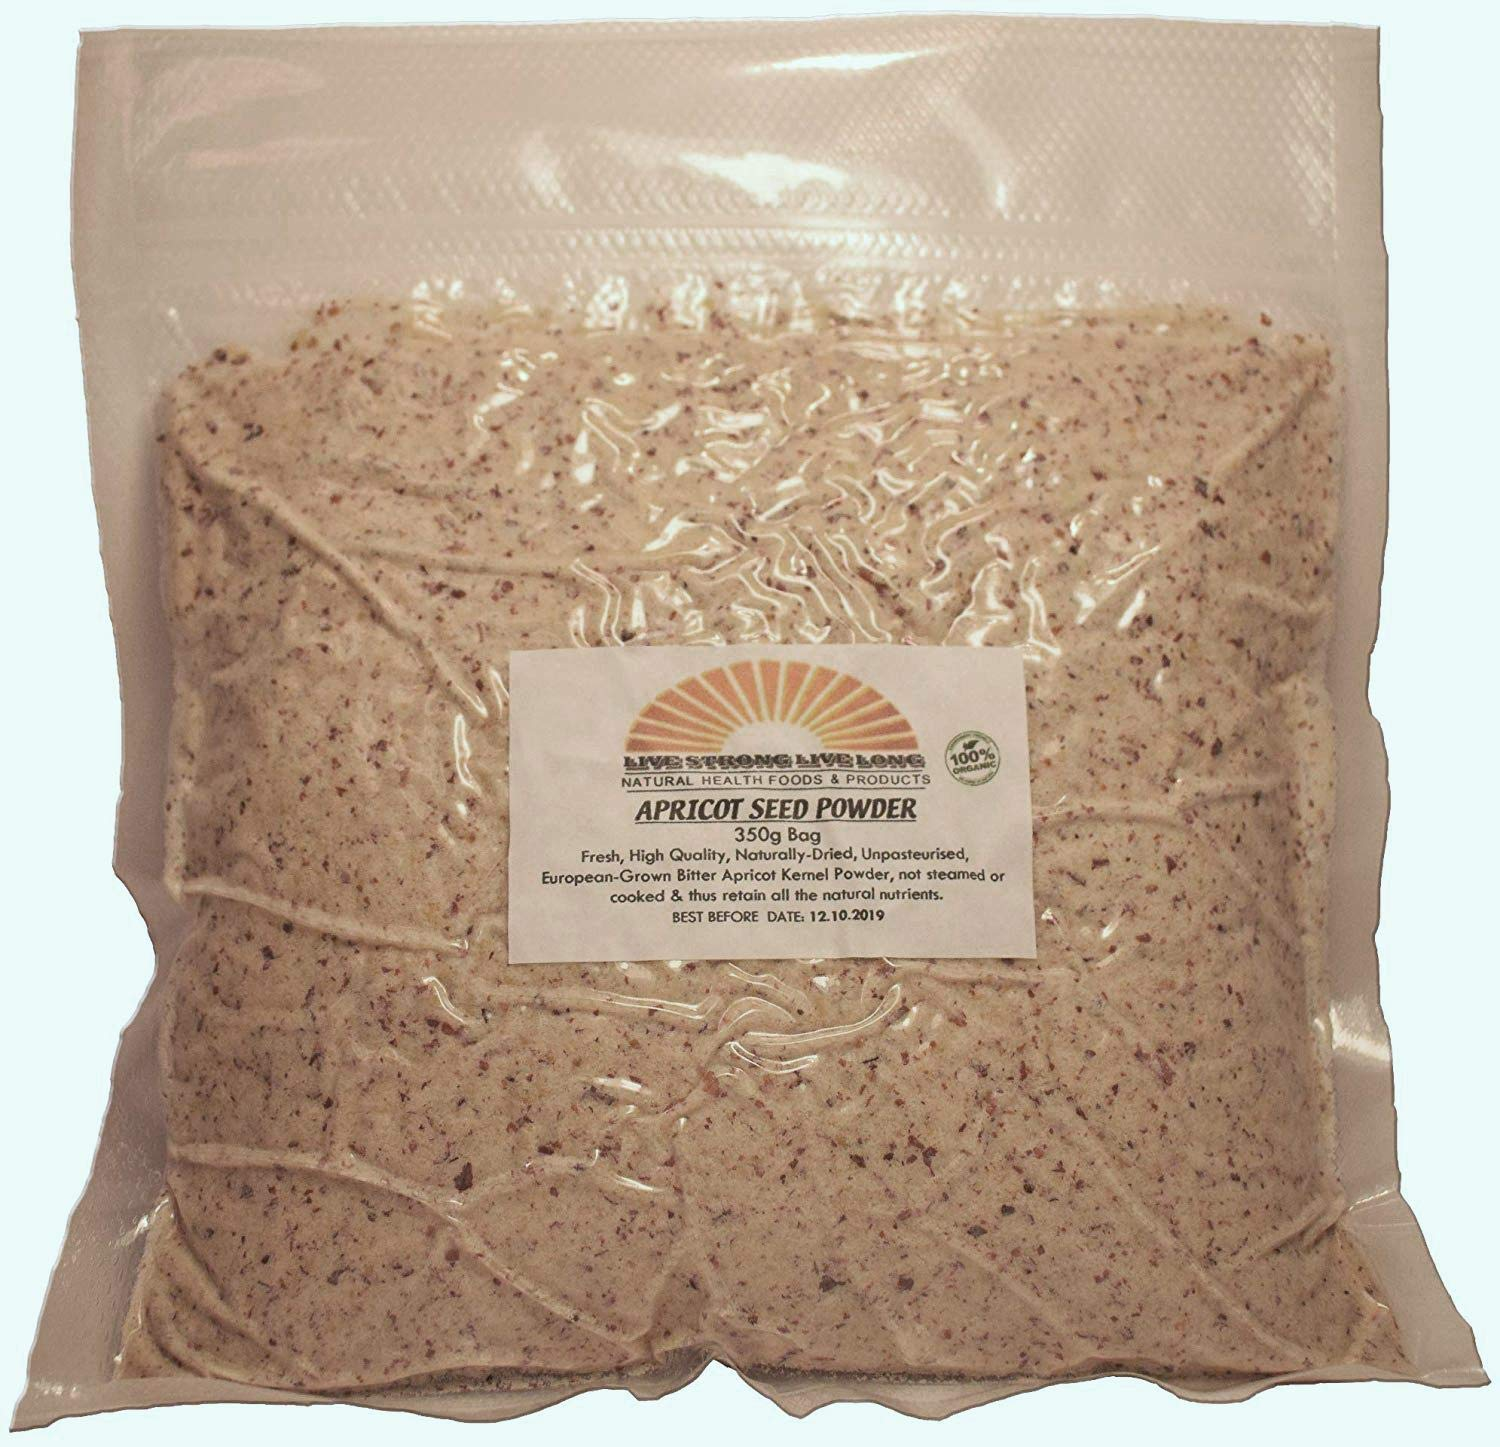 100% Natural Apricot Kernel Seed Powder 350g Bag (12.3oz)